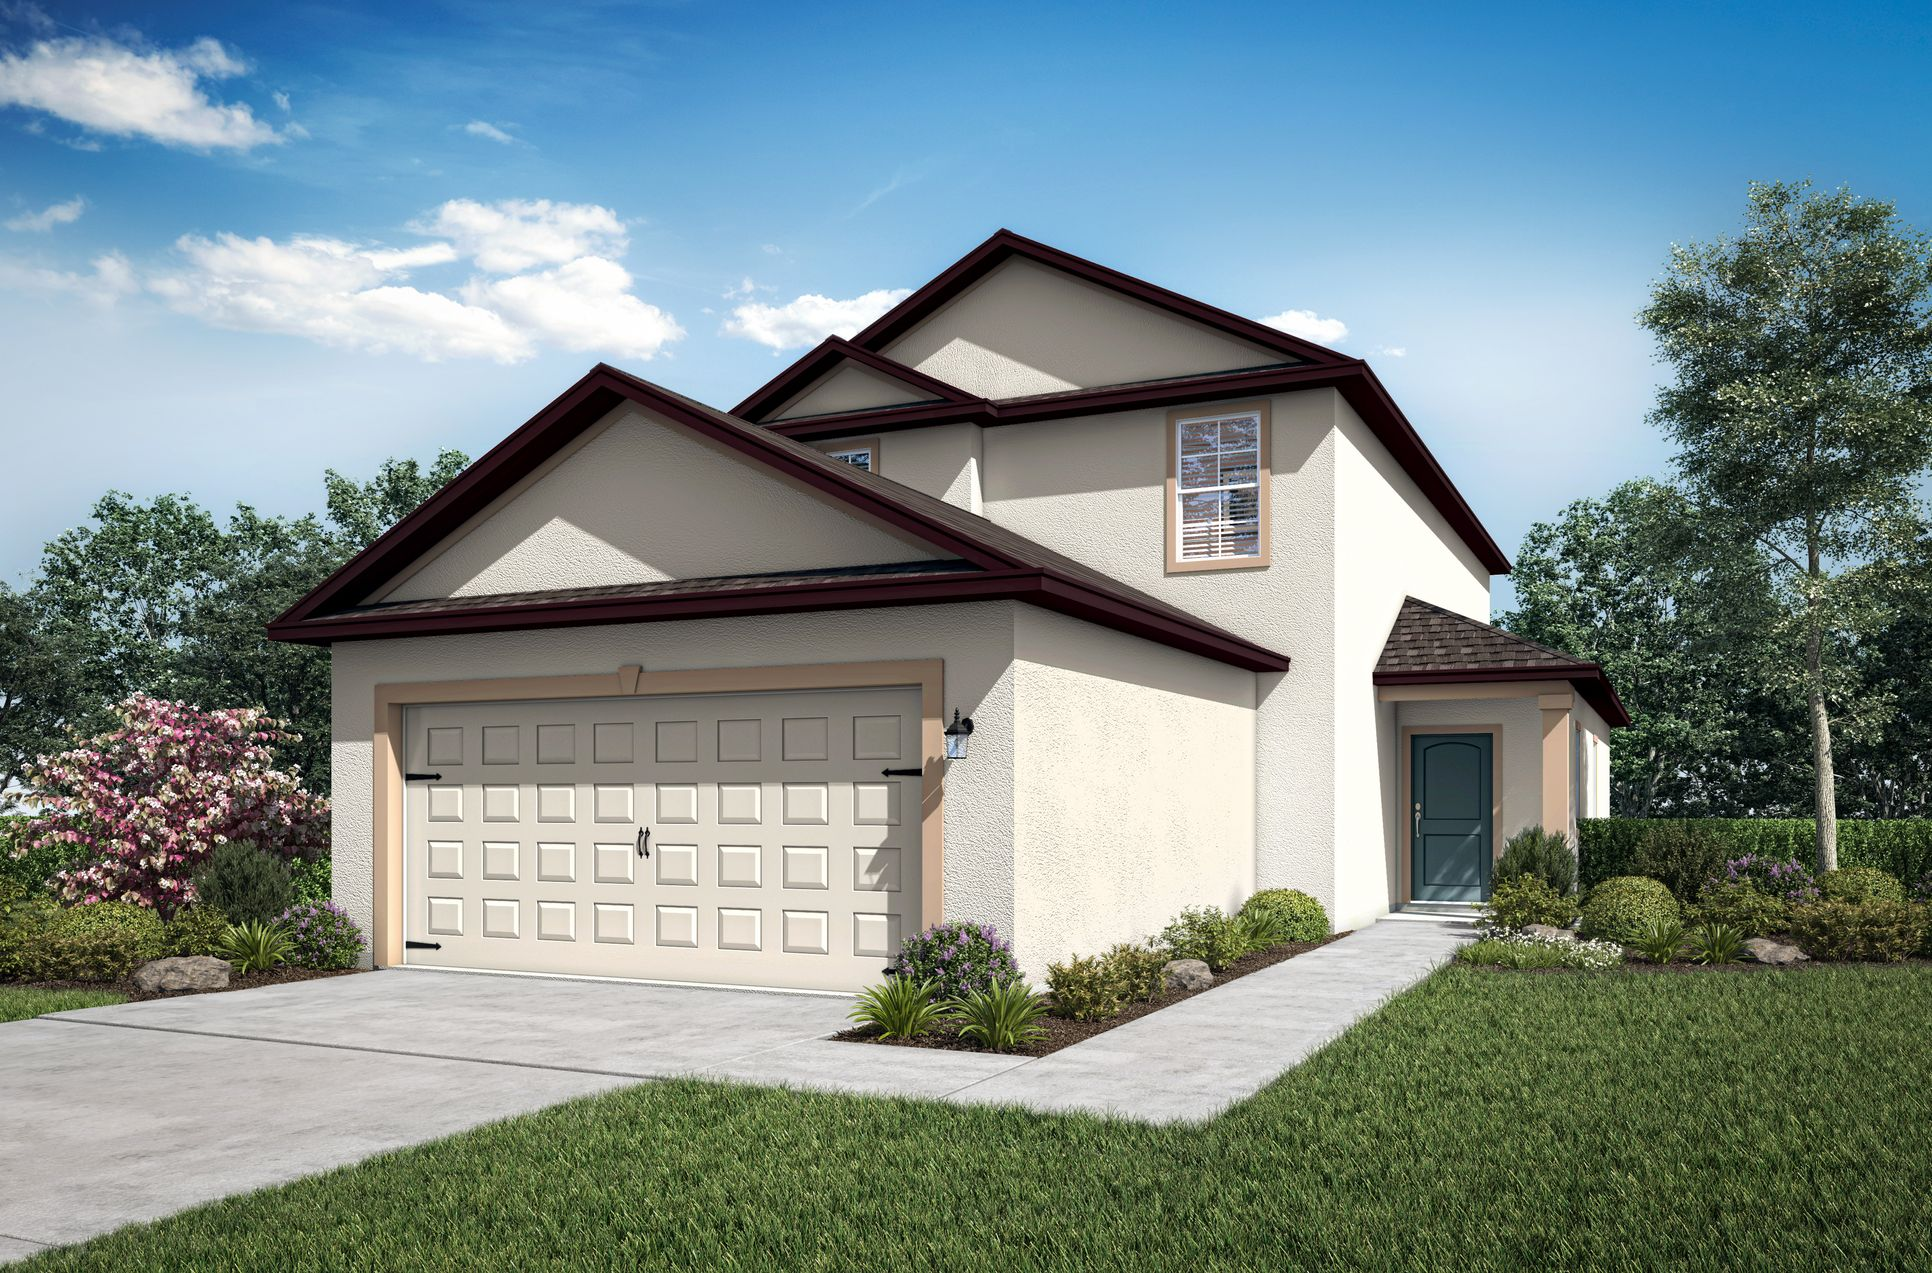 The Polk by LGI Homes:The Polk by LGI Homes